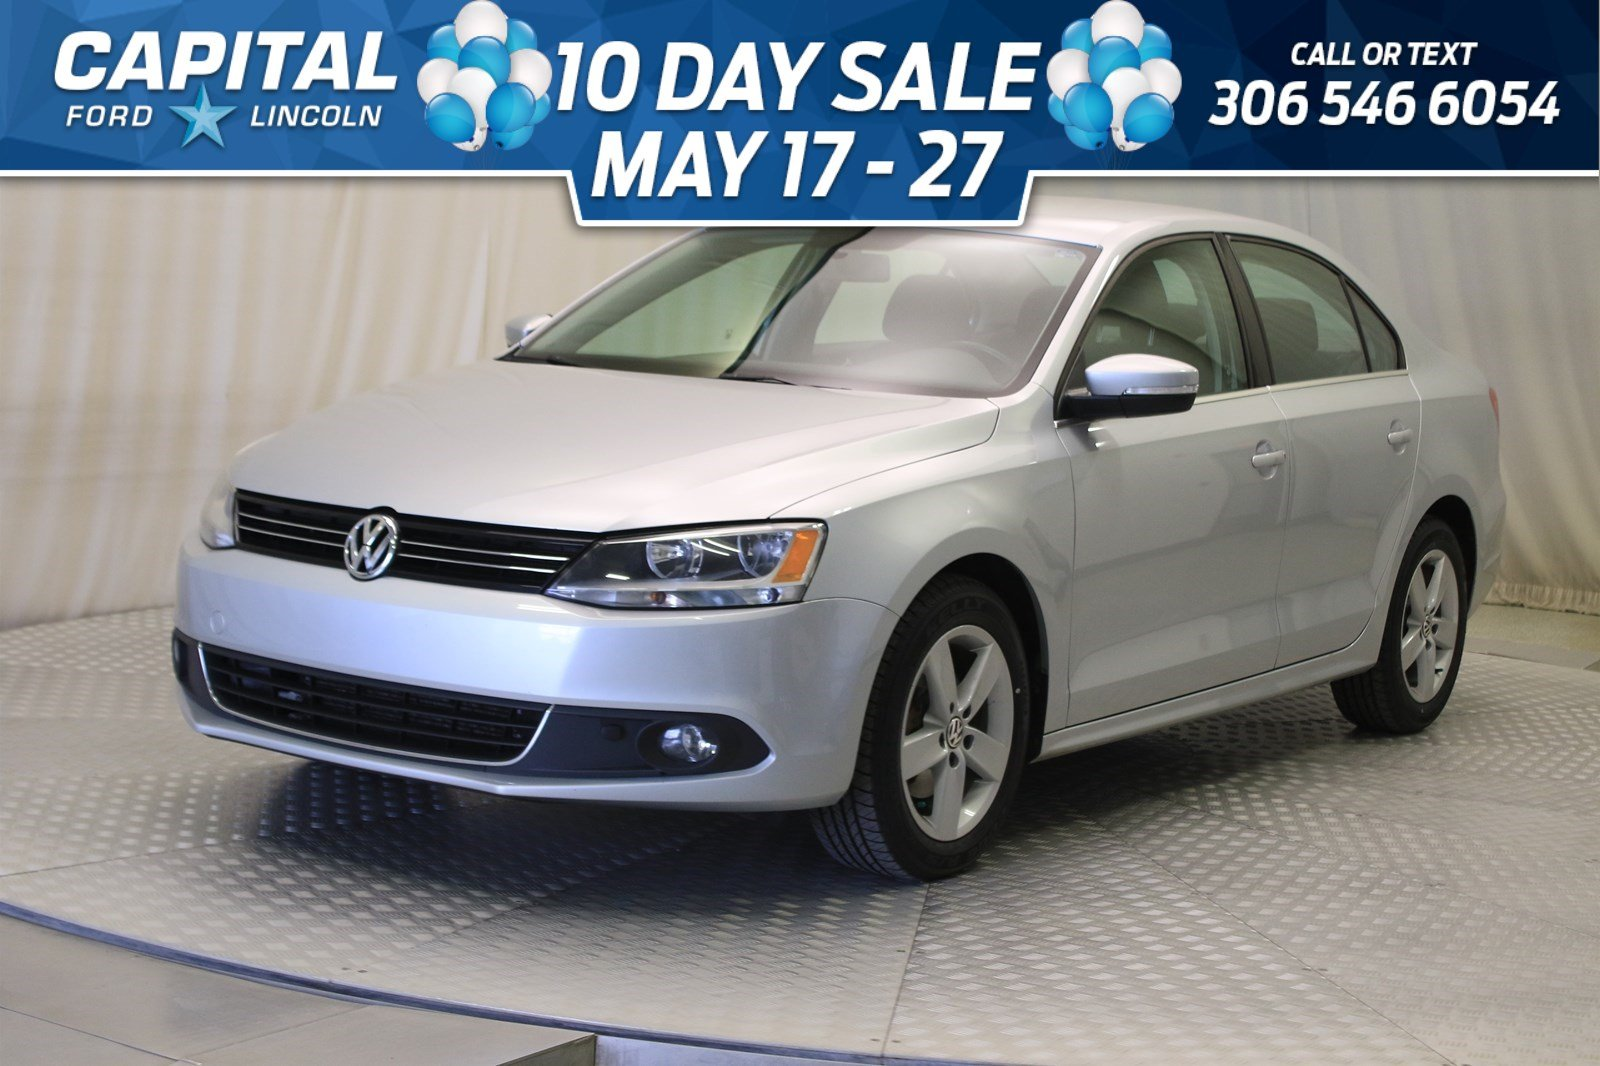 Pre-Owned 2012 Volkswagen Jetta Sedan Comfortline | Diesel | Alloy Wheels |